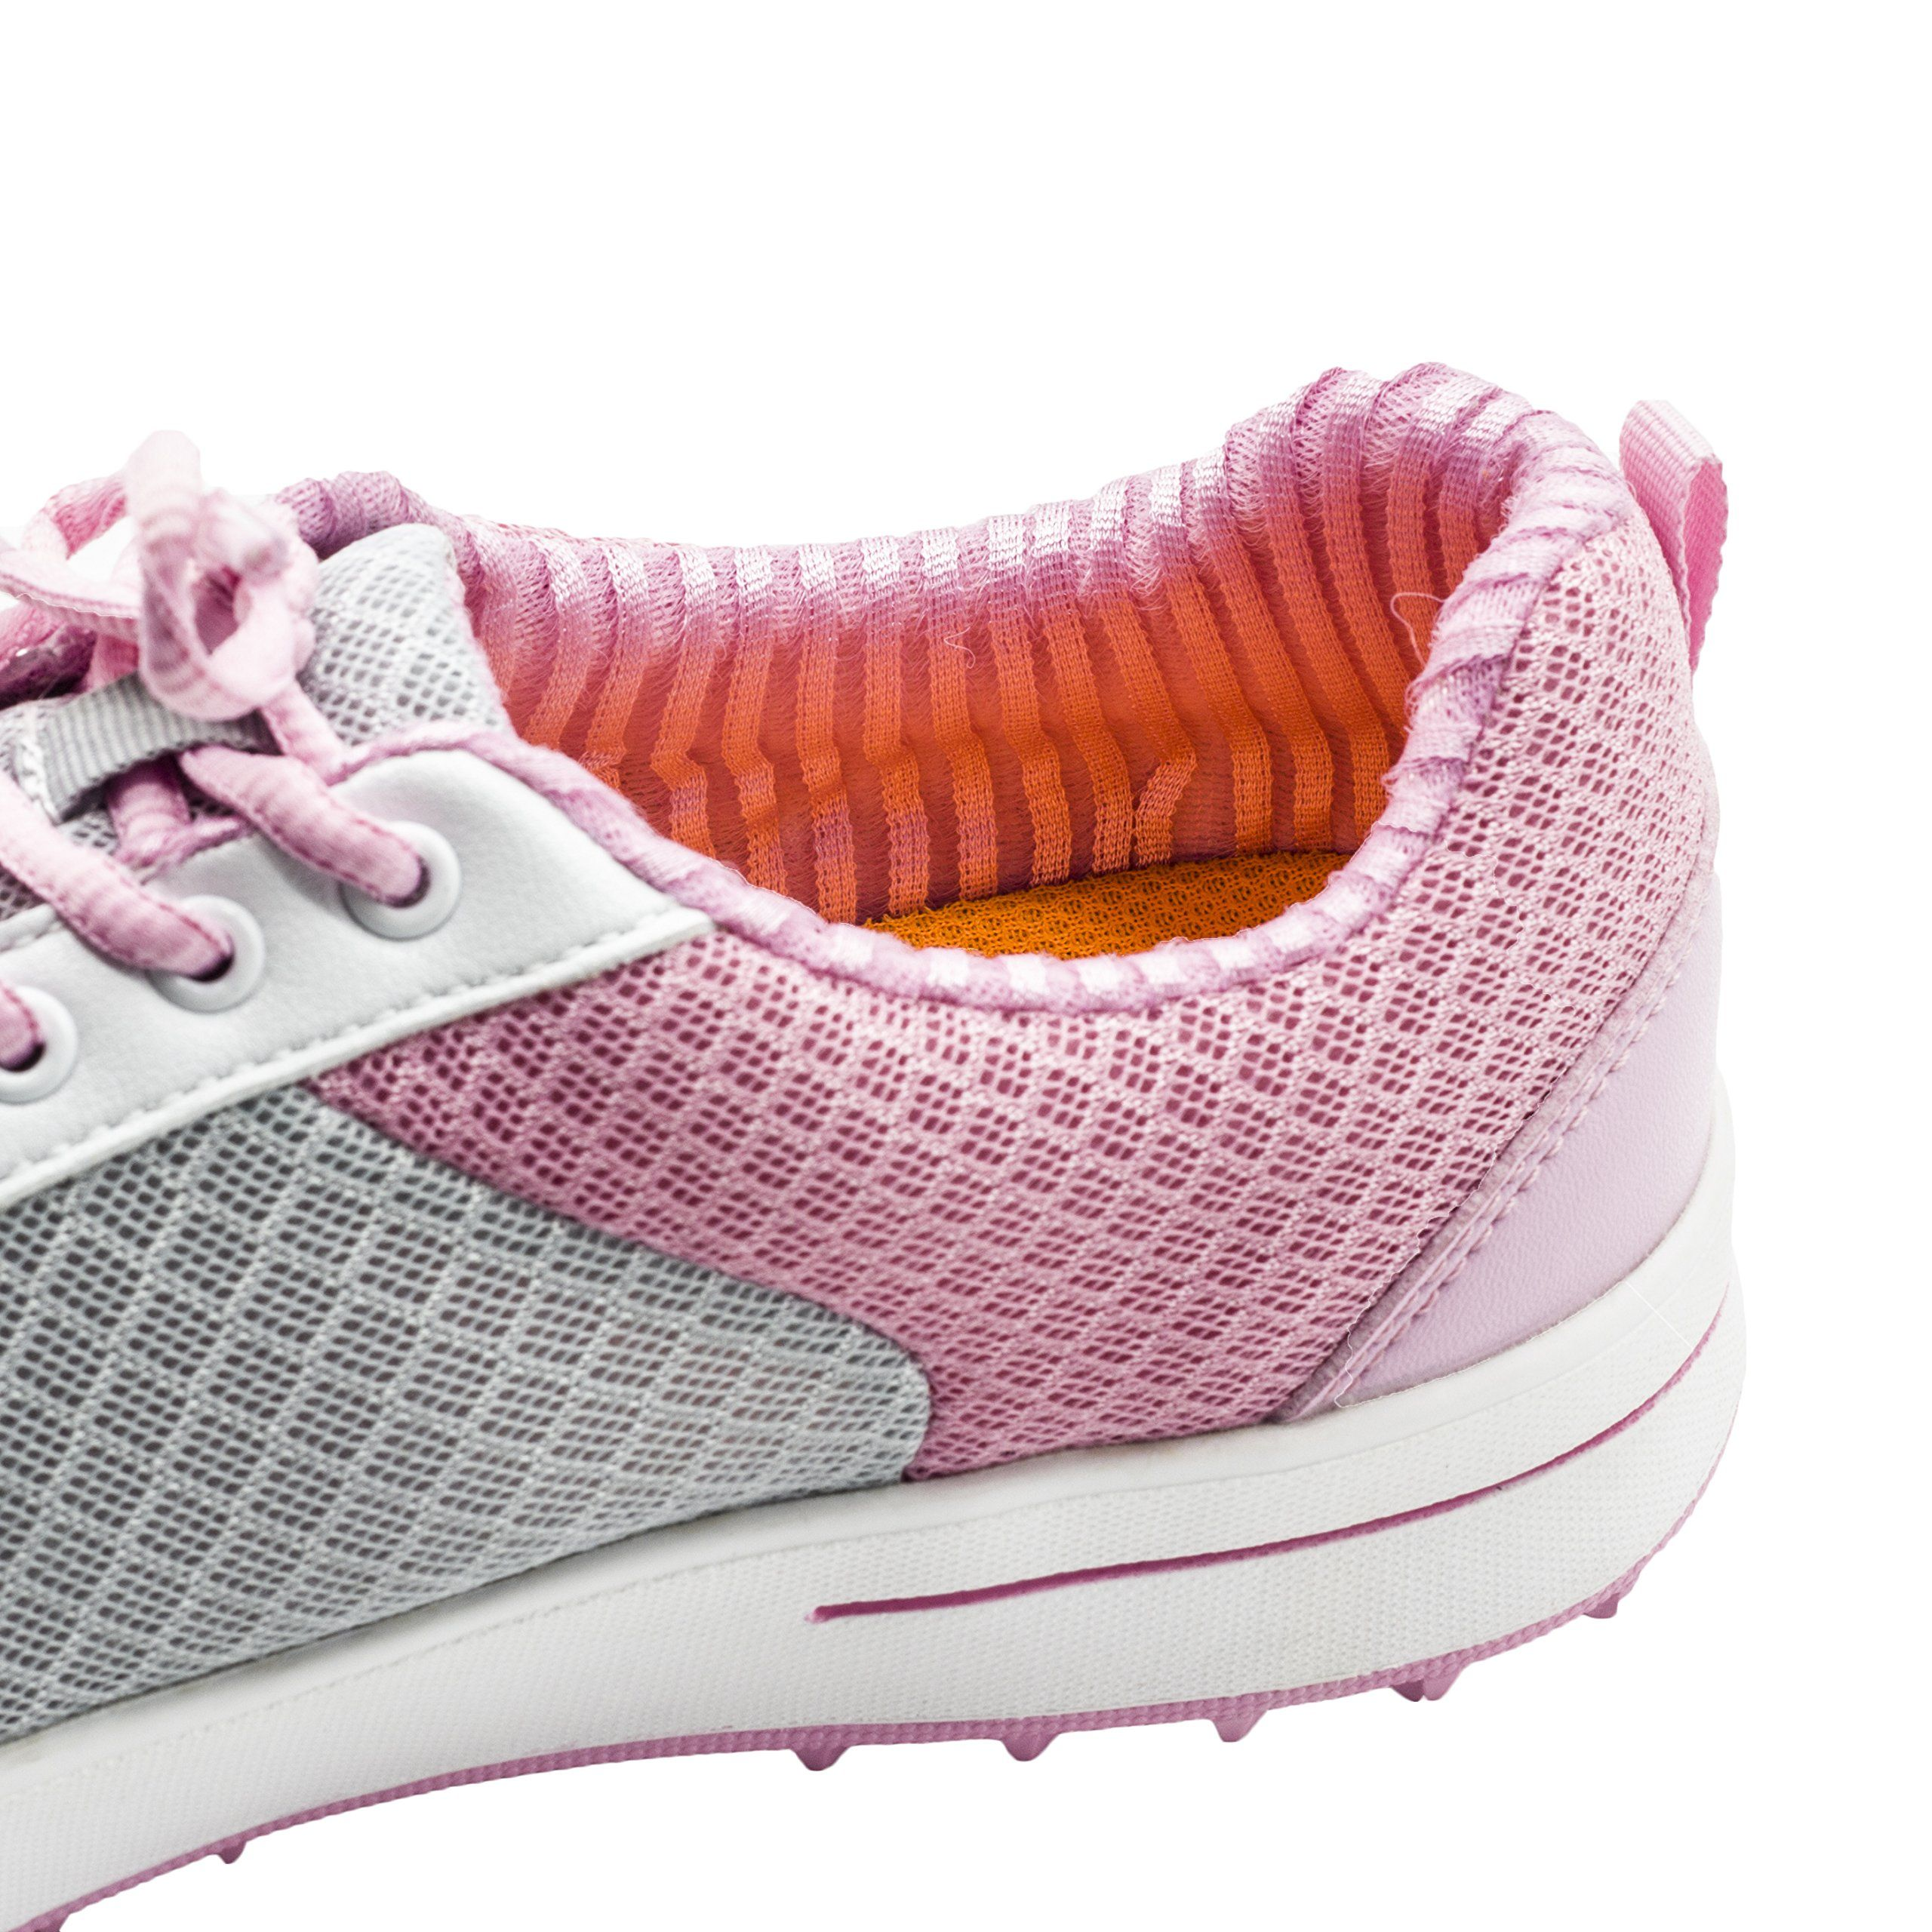 60222bac0afe Golf Shoes     PGM Breathable Summer Golf Shoes for Women and Girl Size 5  US 34EU XS Small XZ081 Pink     You can find more details by going to the  photo ...